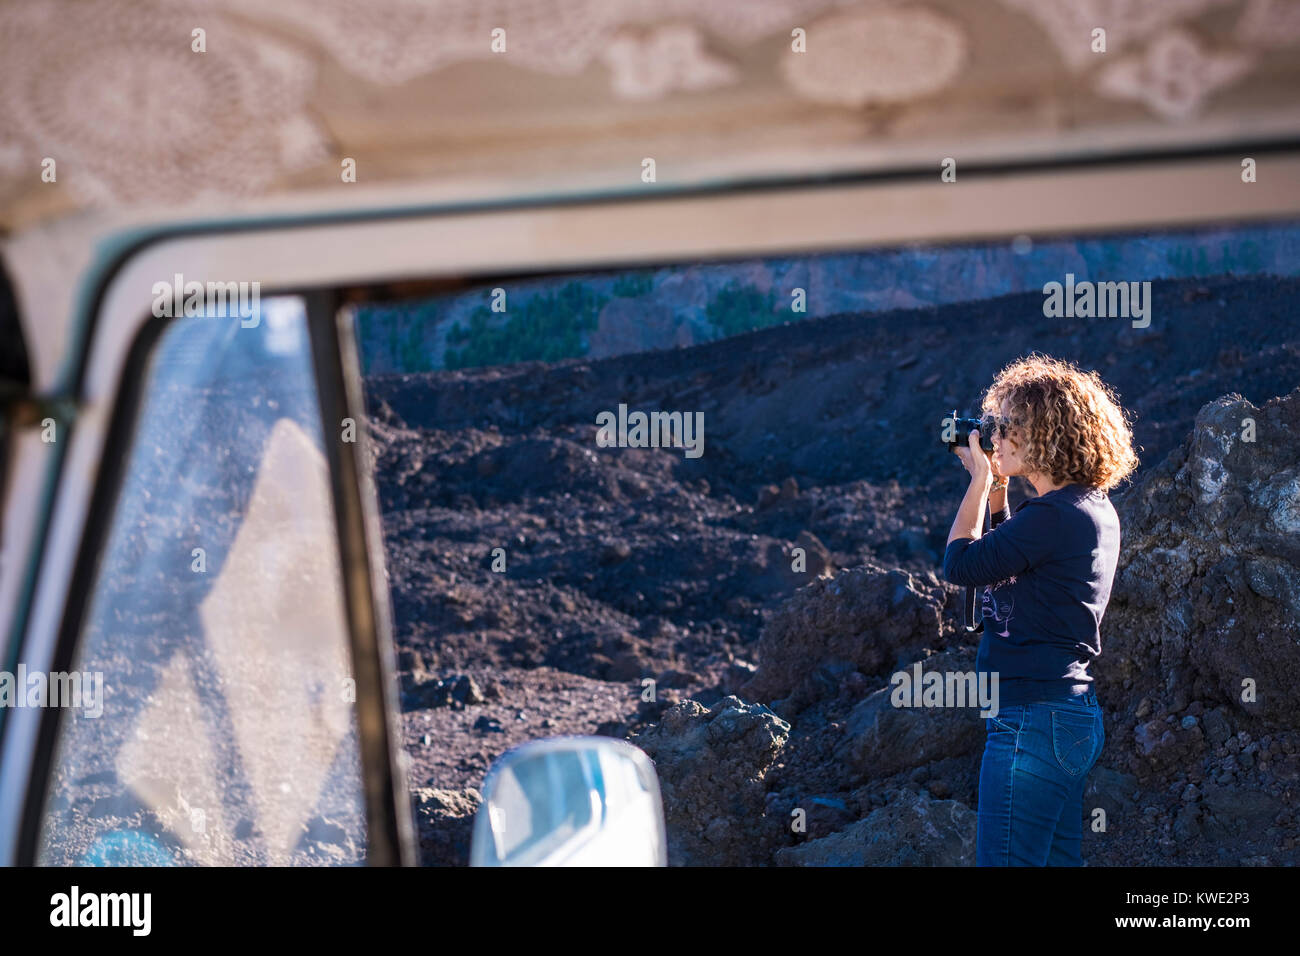 Woman photographing with camera seen through travel trailer's window - Stock Image